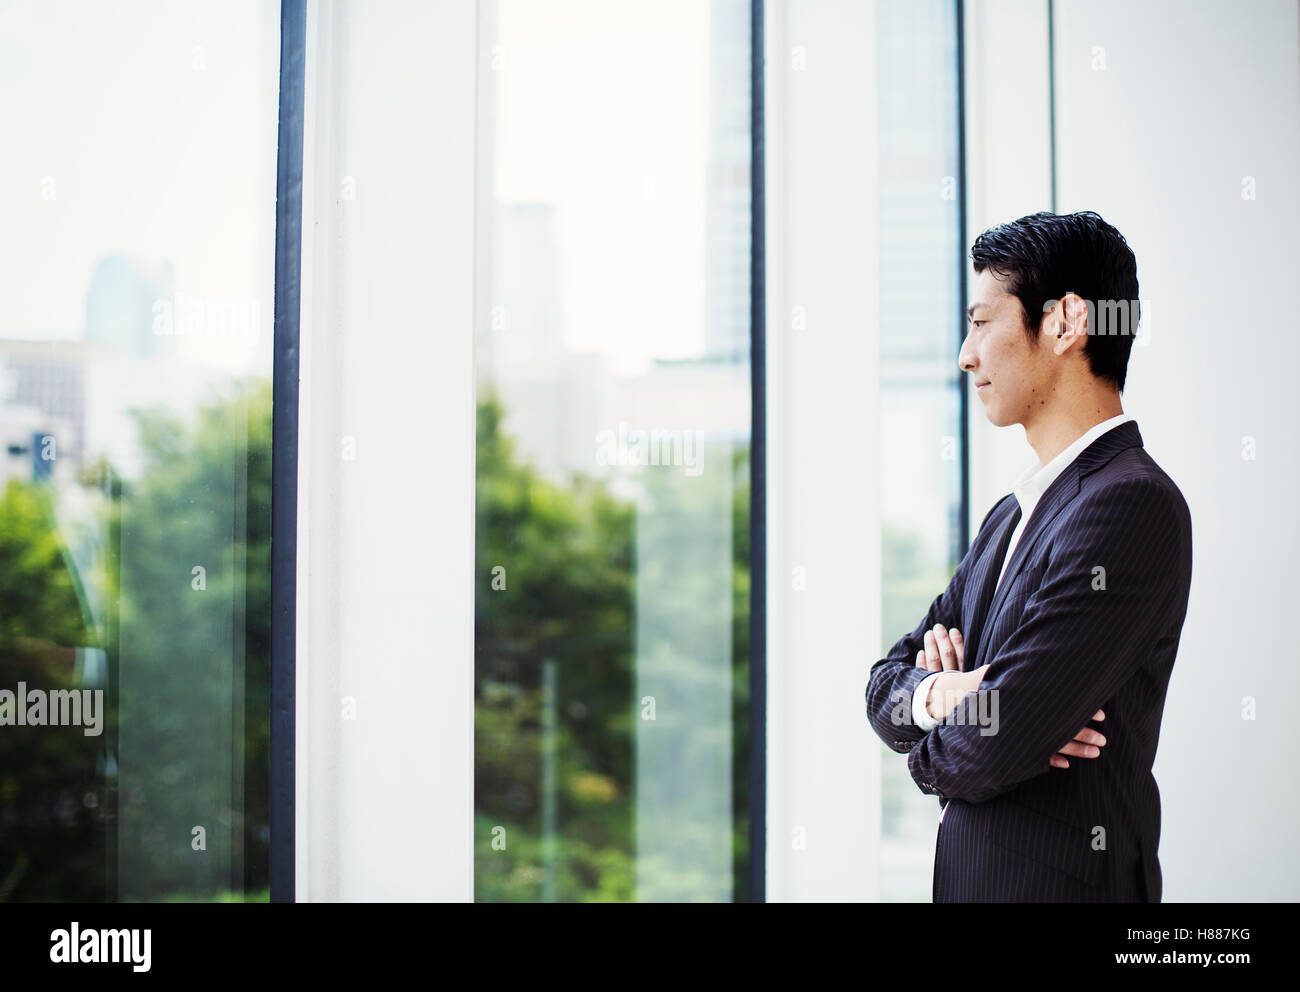 A businessman in the office, by a large window, looking out. - Stock Image